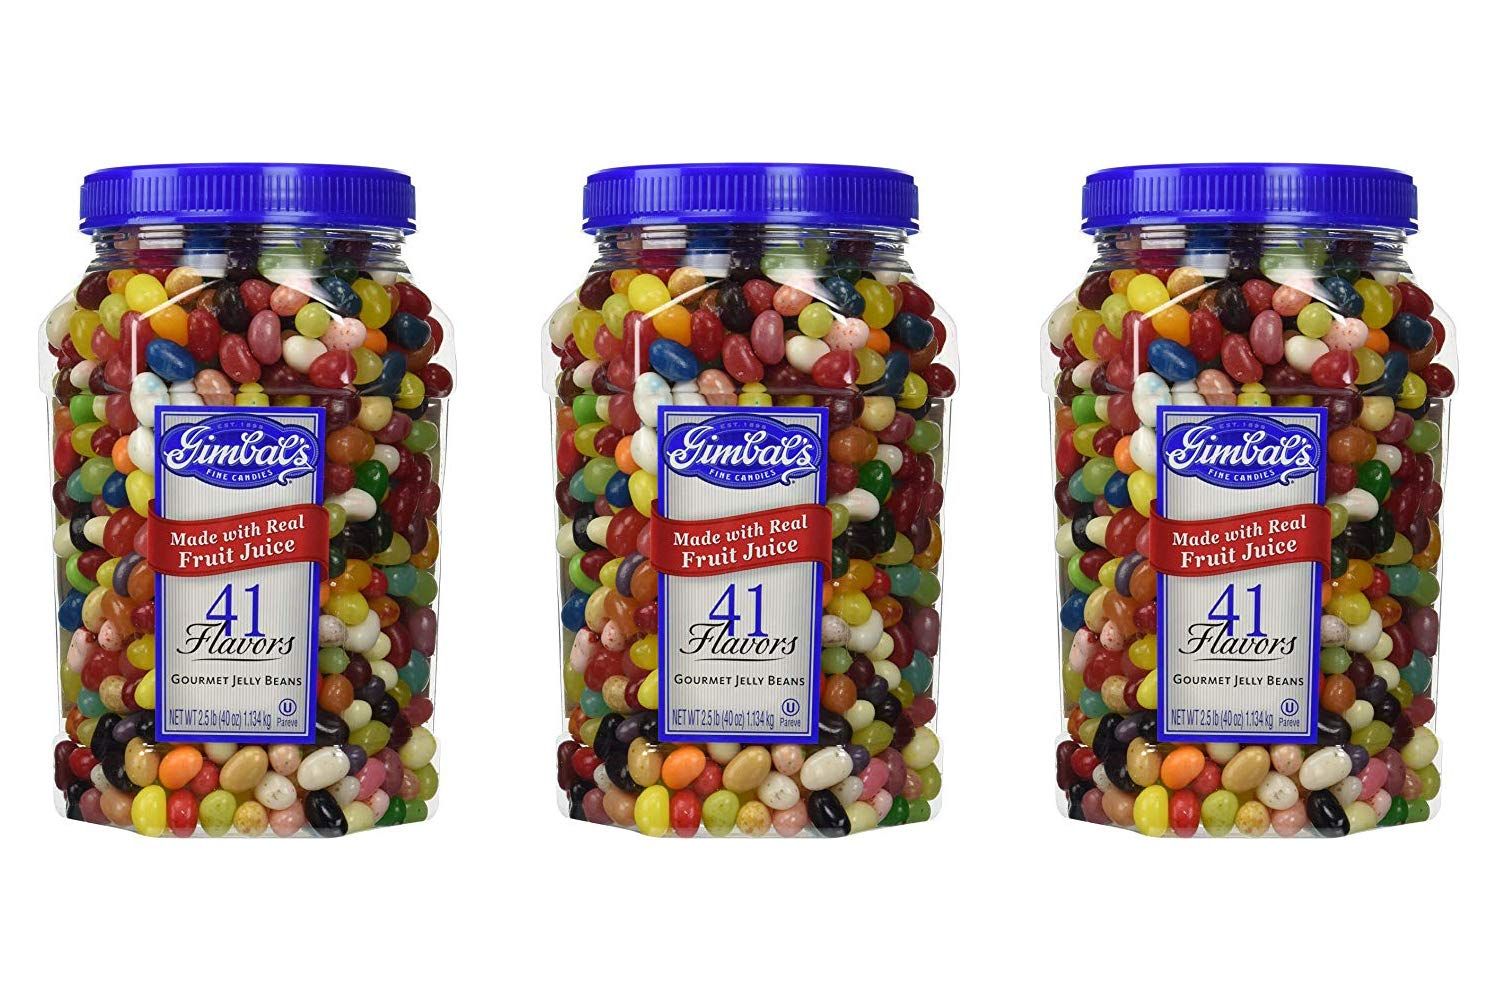 Gimbal's Fine Candies Gourmet Jelly Beans, 41 Flavors, 40-Ounce Jar (3 Pack)